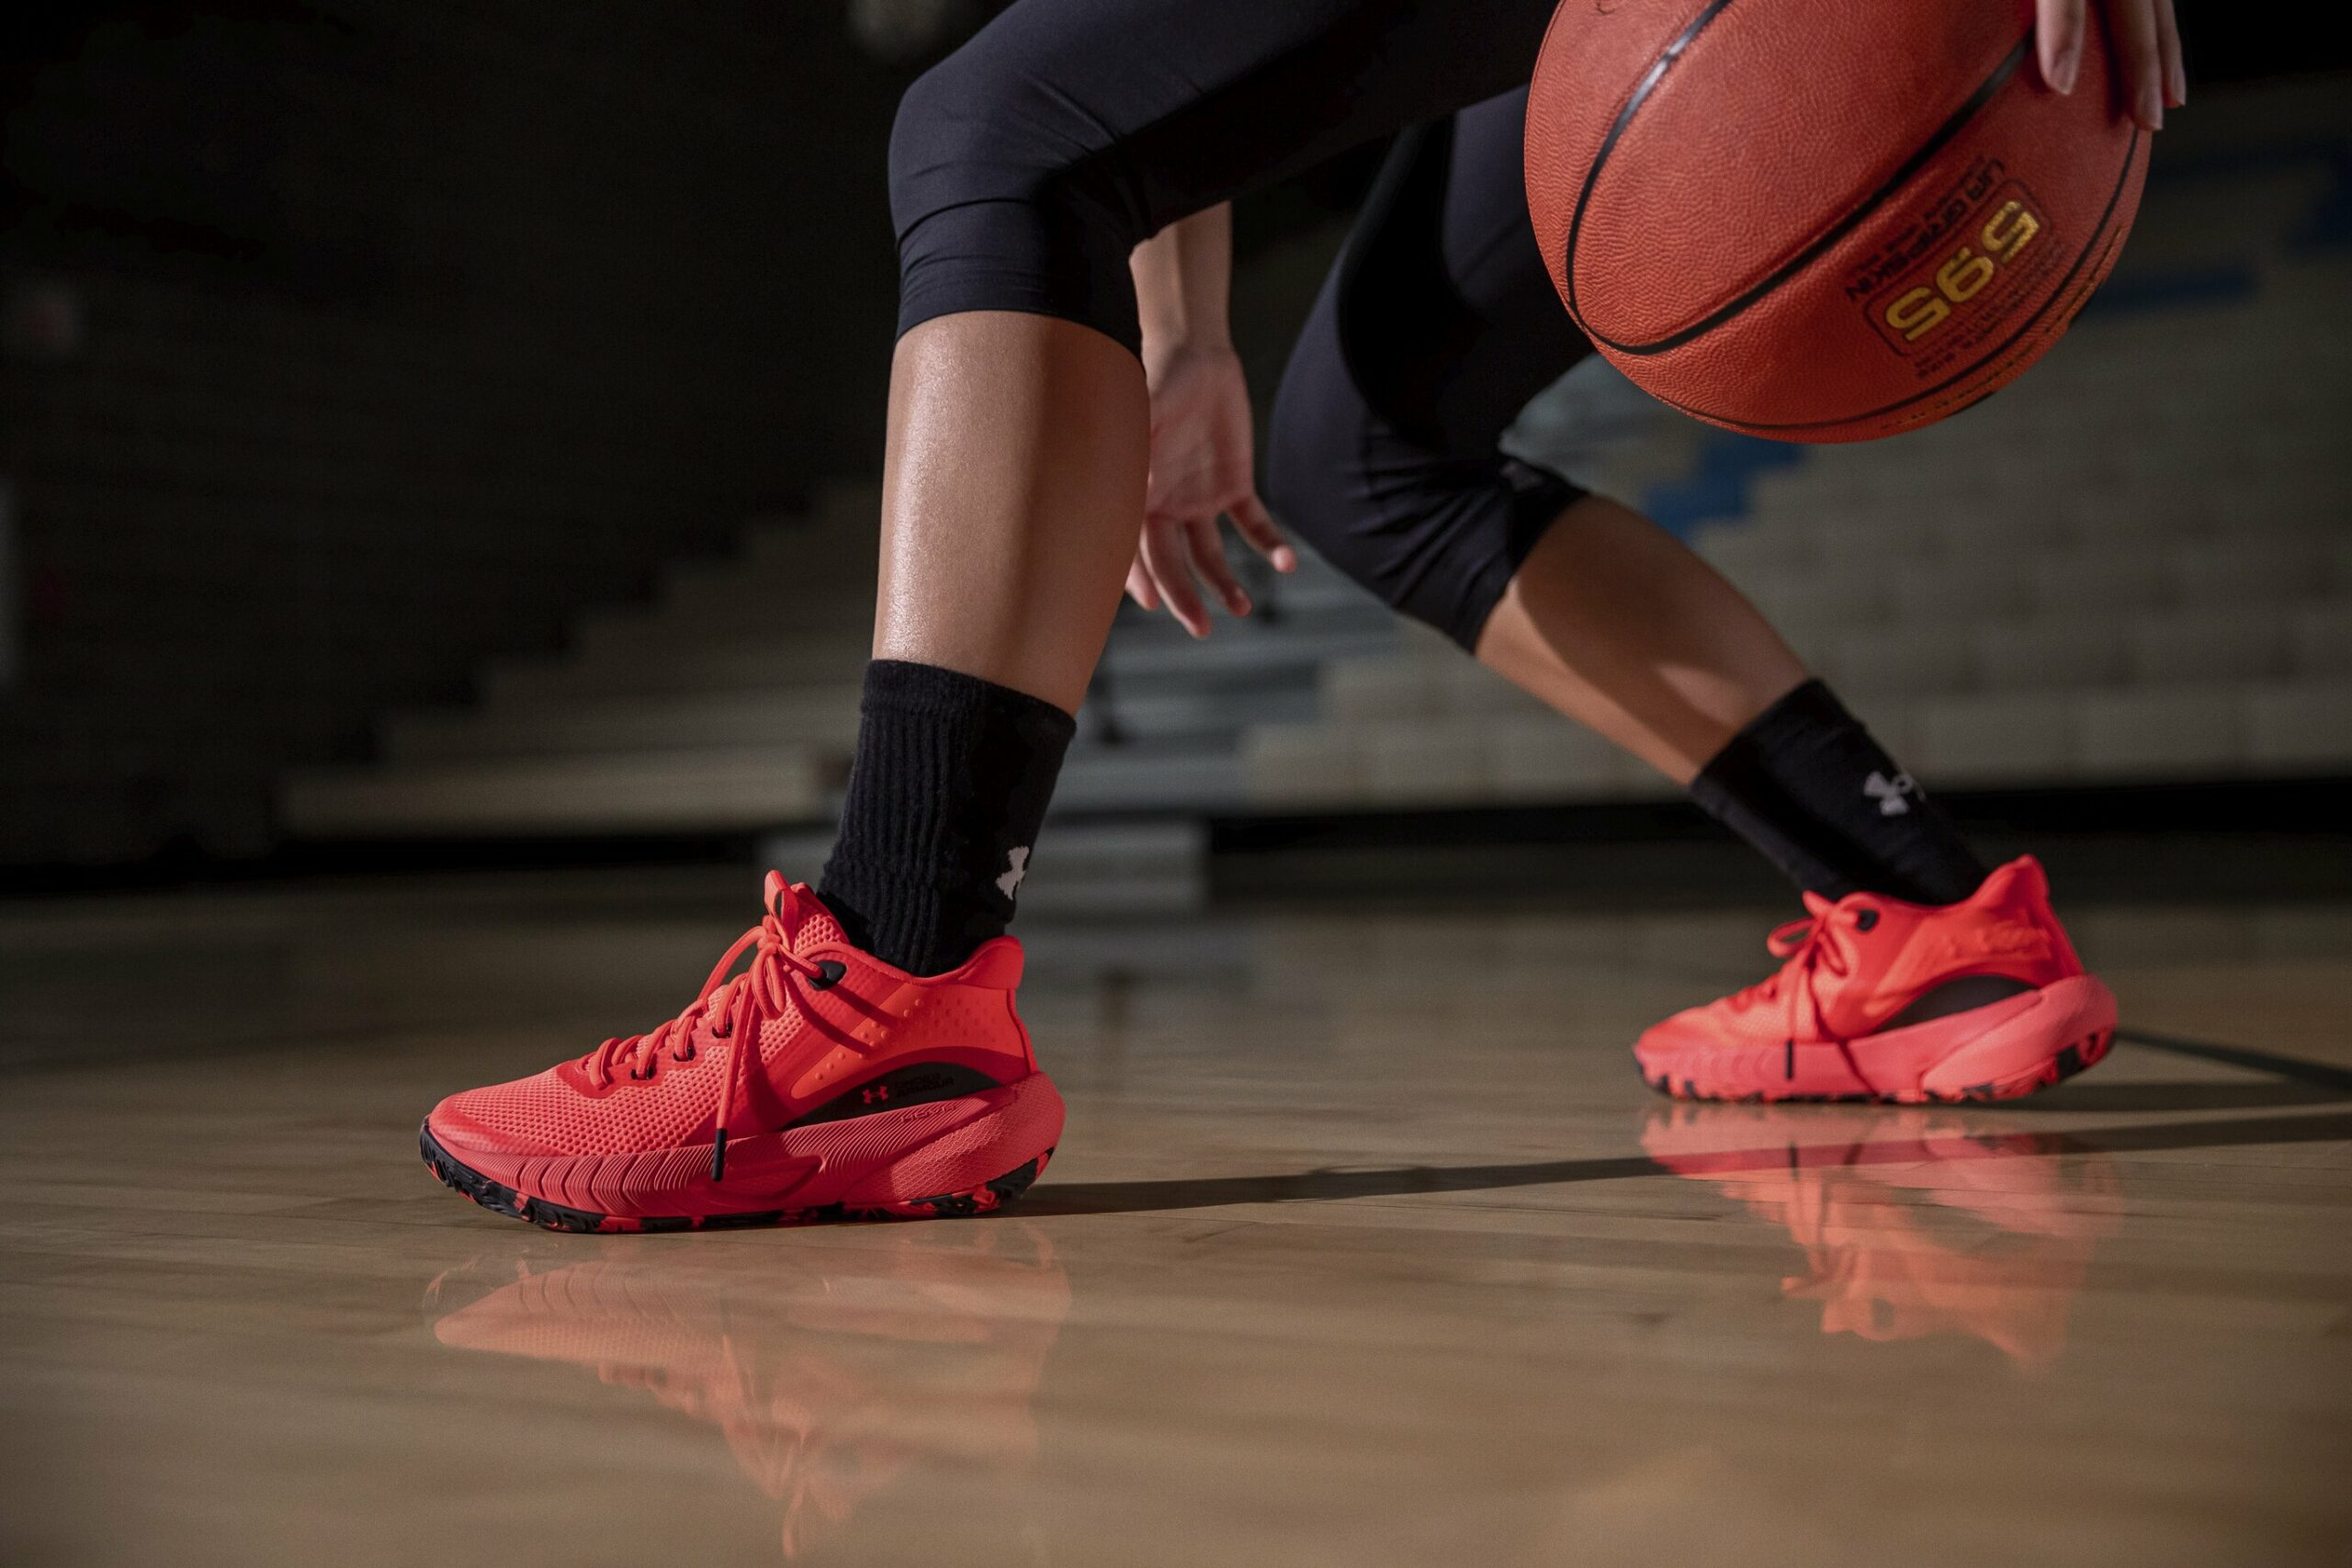 Under Armour womens Basketball Shoe